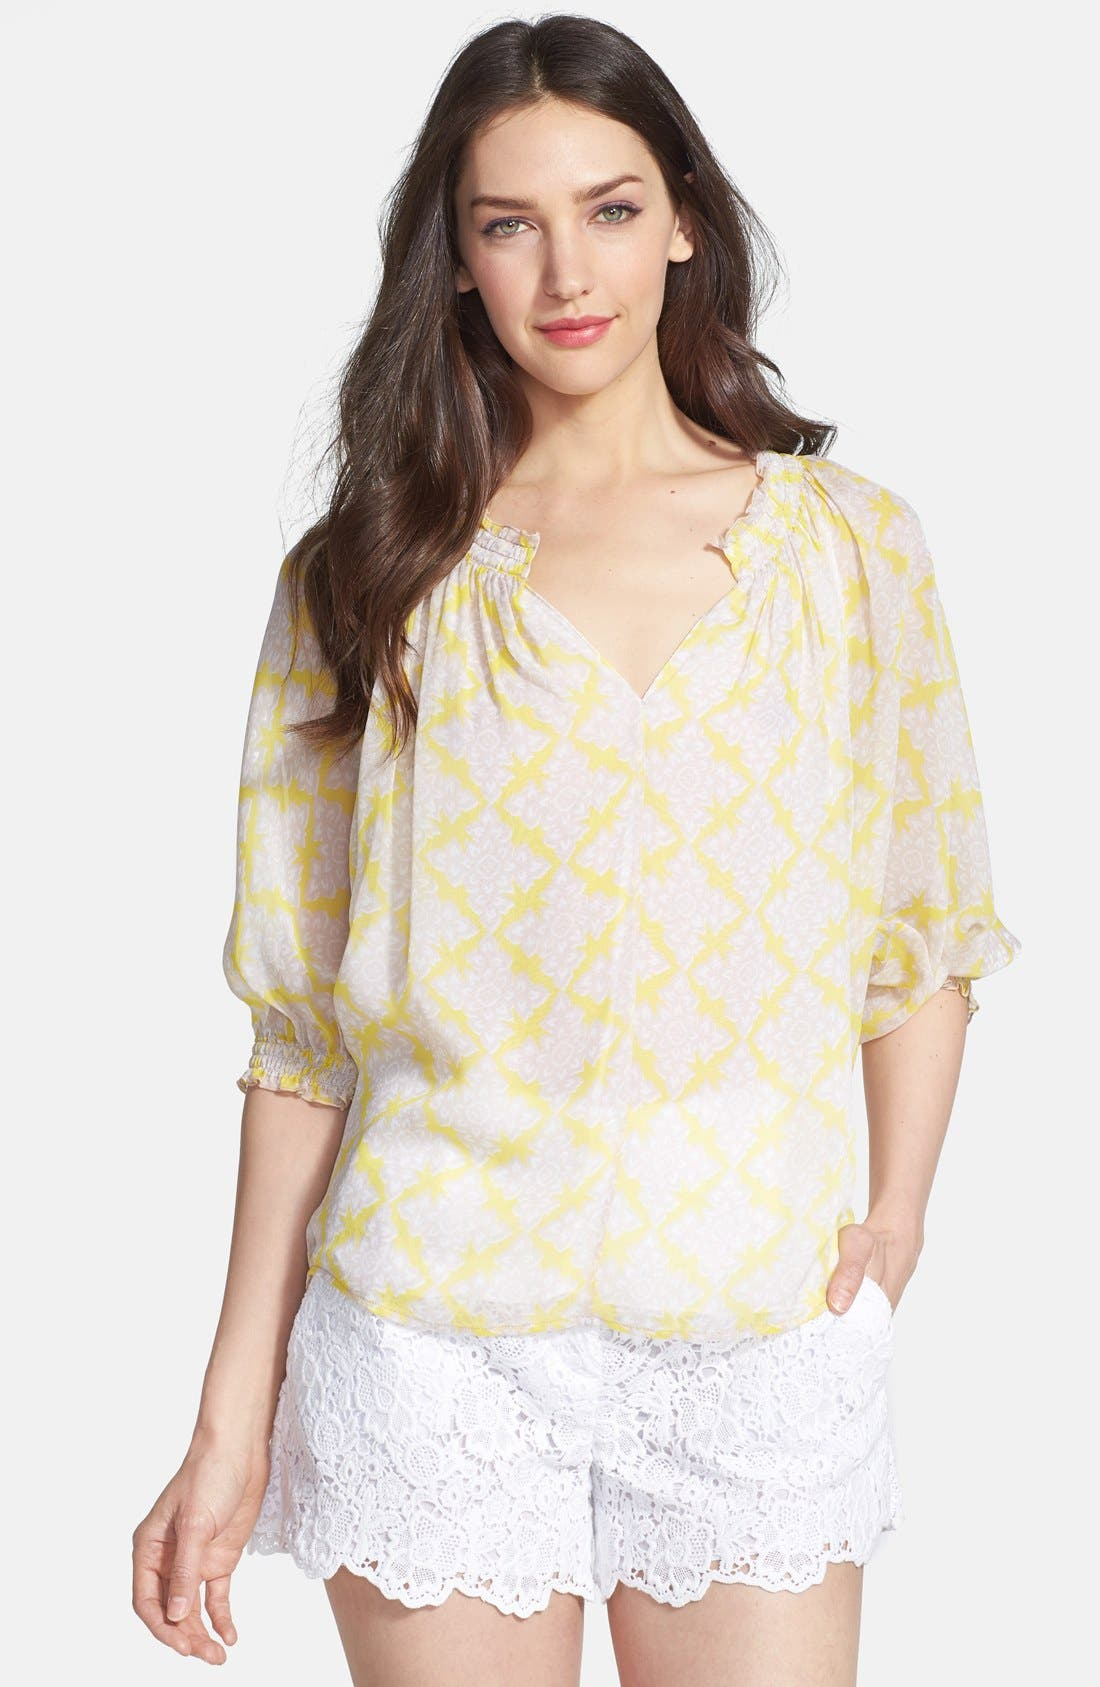 Alternate Image 1 Selected - Diane von Furstenberg 'Bryn' Print Silk Top